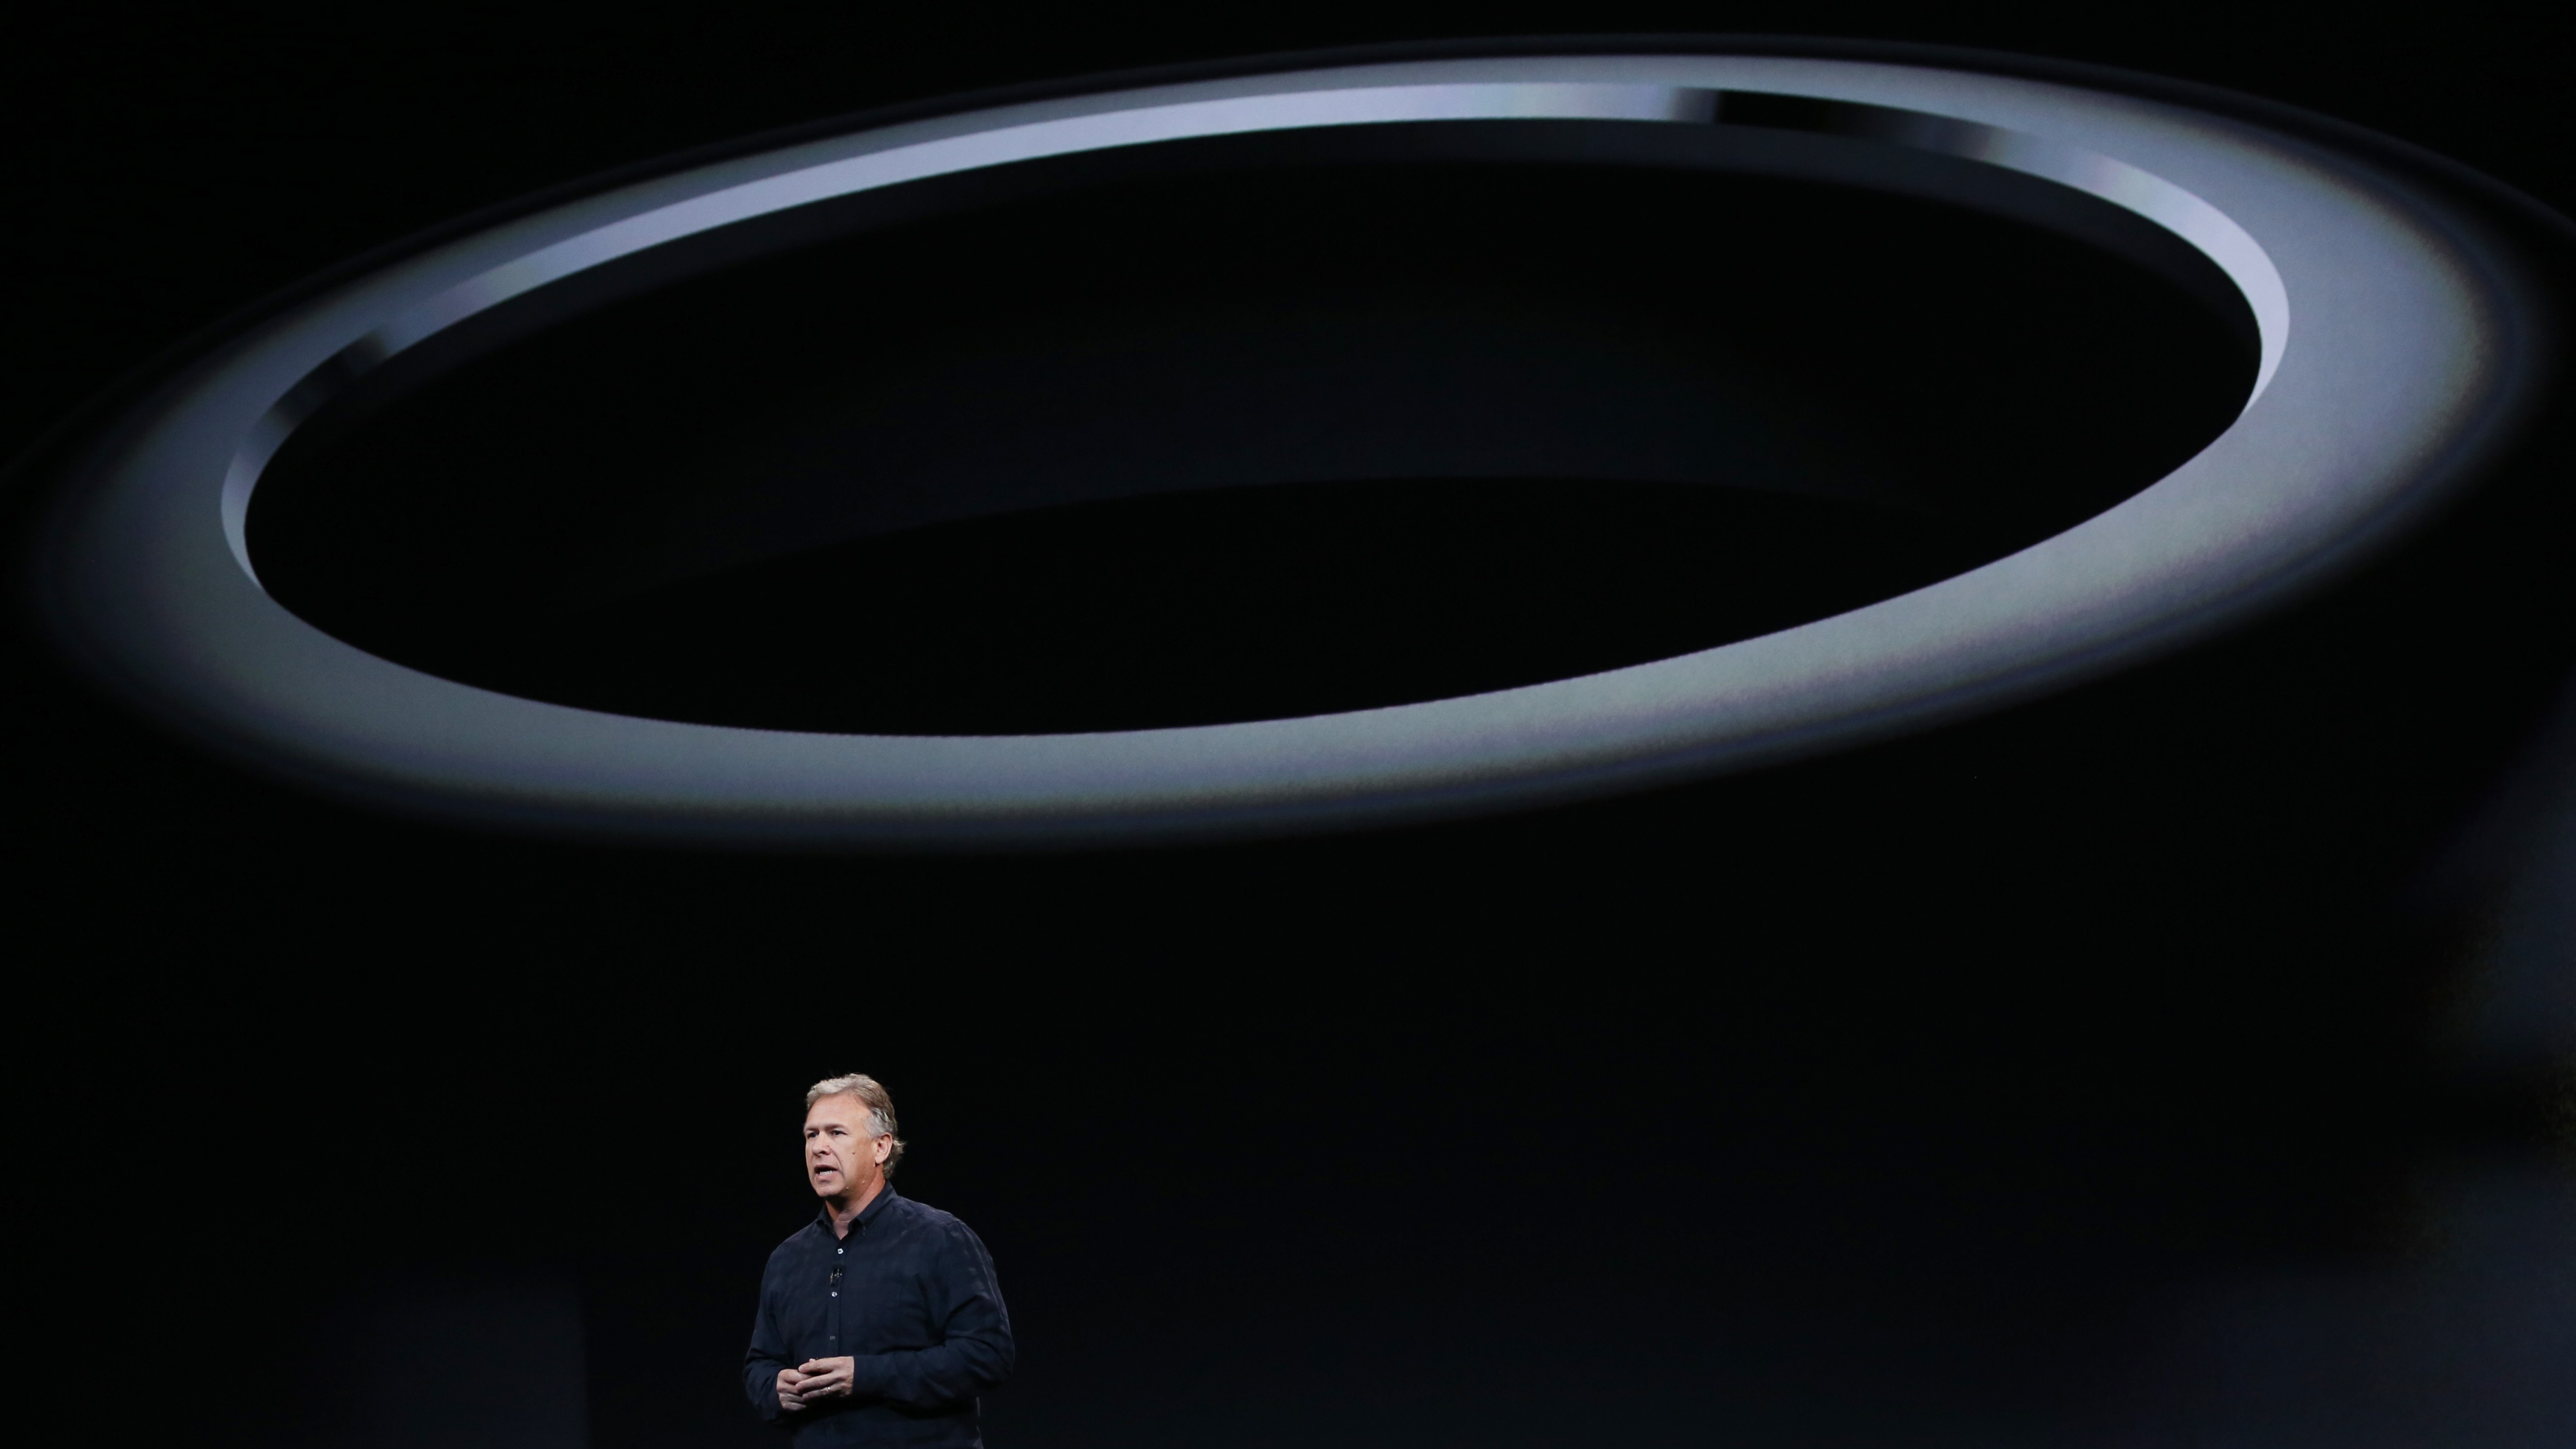 Philip W. Schiller, the Senior Vice President of worldwide marketing at Apple Inc speaks on stage during...